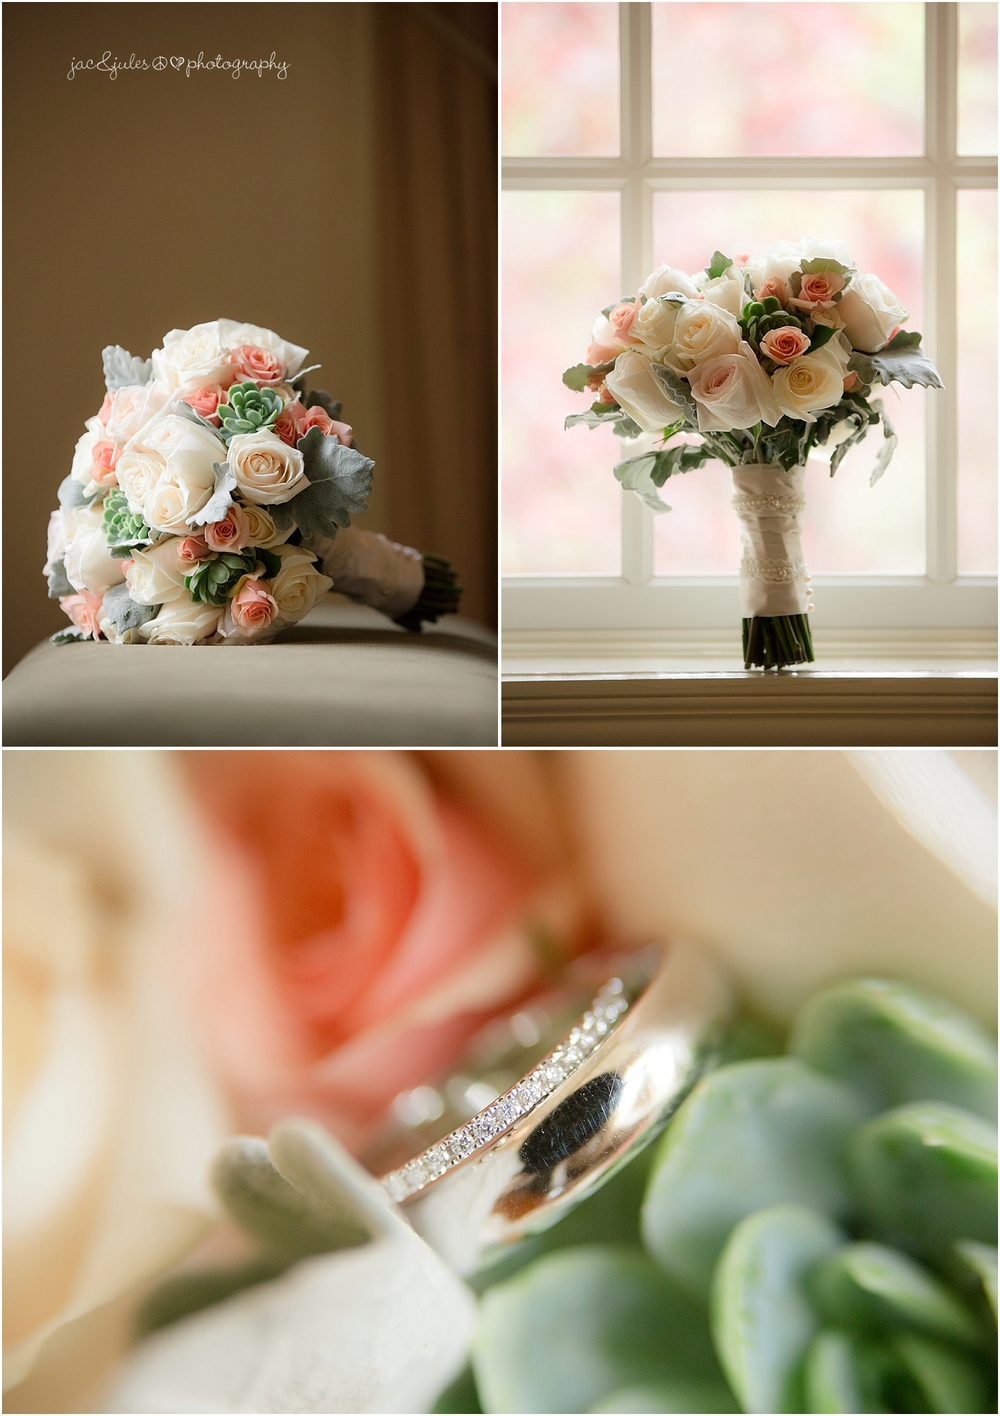 jacnjules photographs wedding bouquet at olde mill inn, basking ridge nj